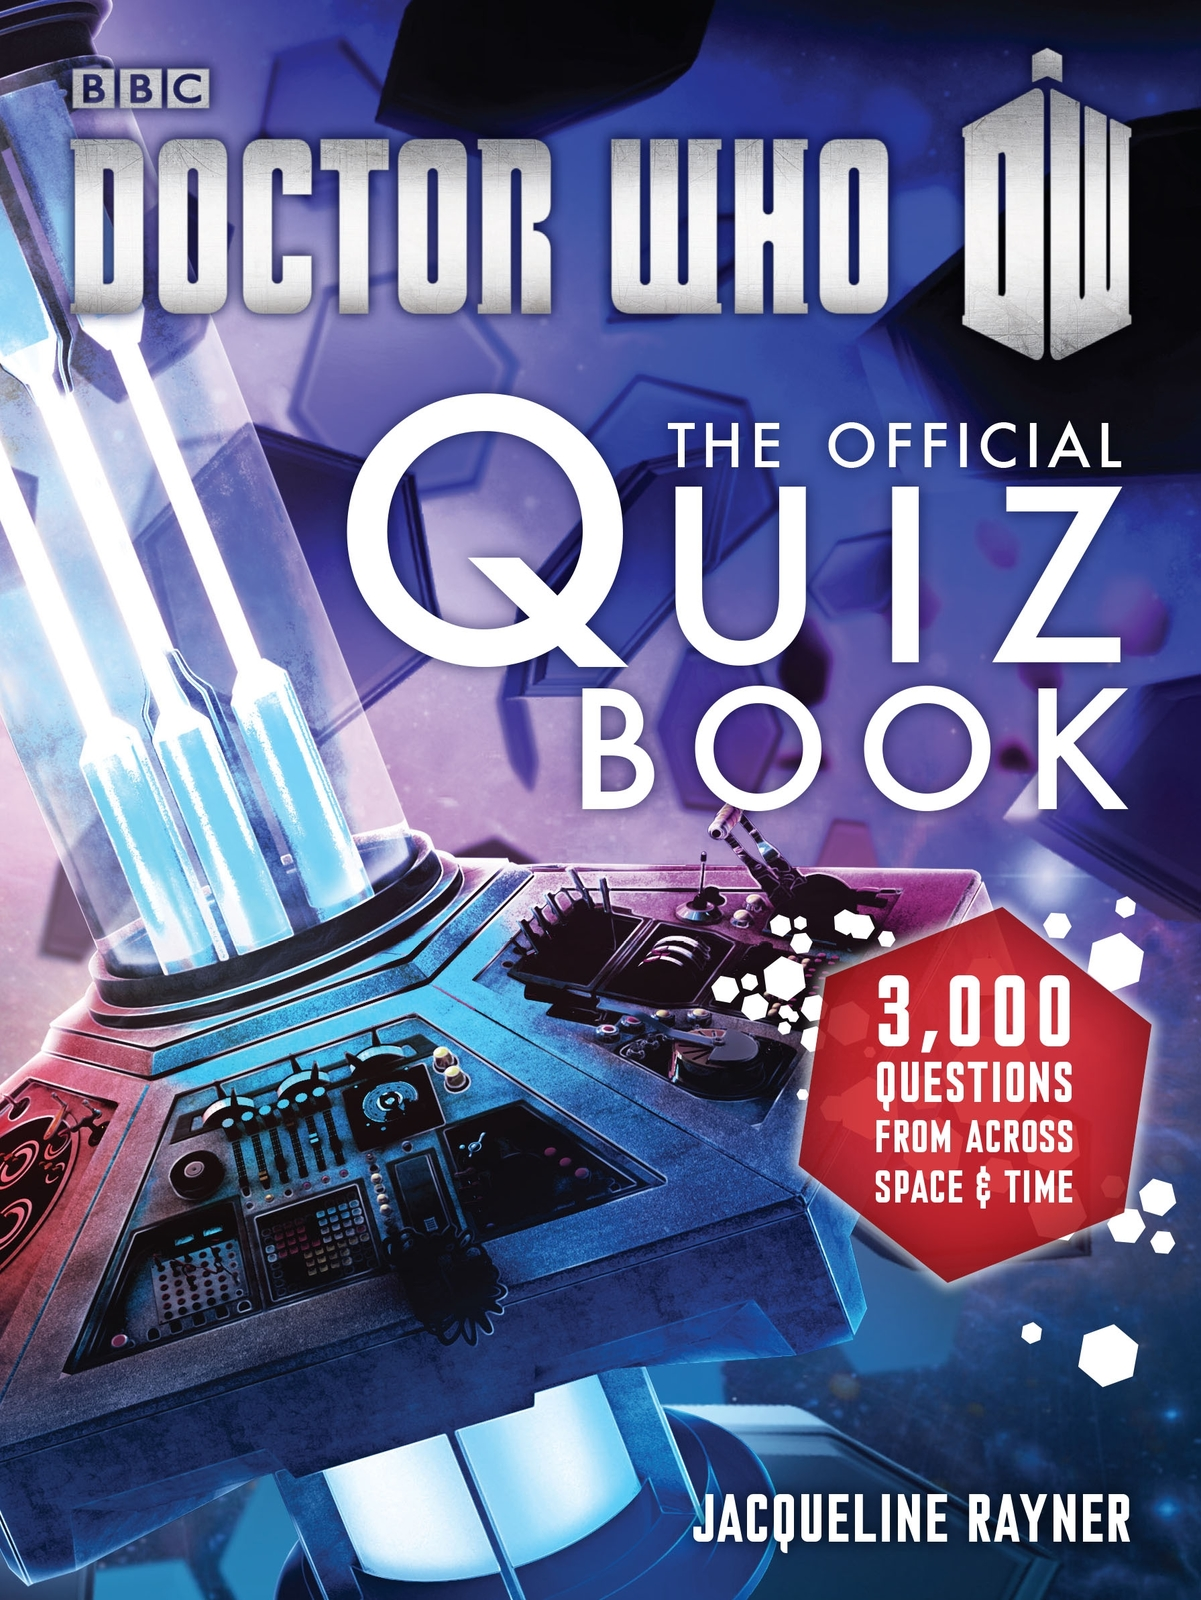 Doctor Who: The Official Quiz Book by Jacqueline Rayner image